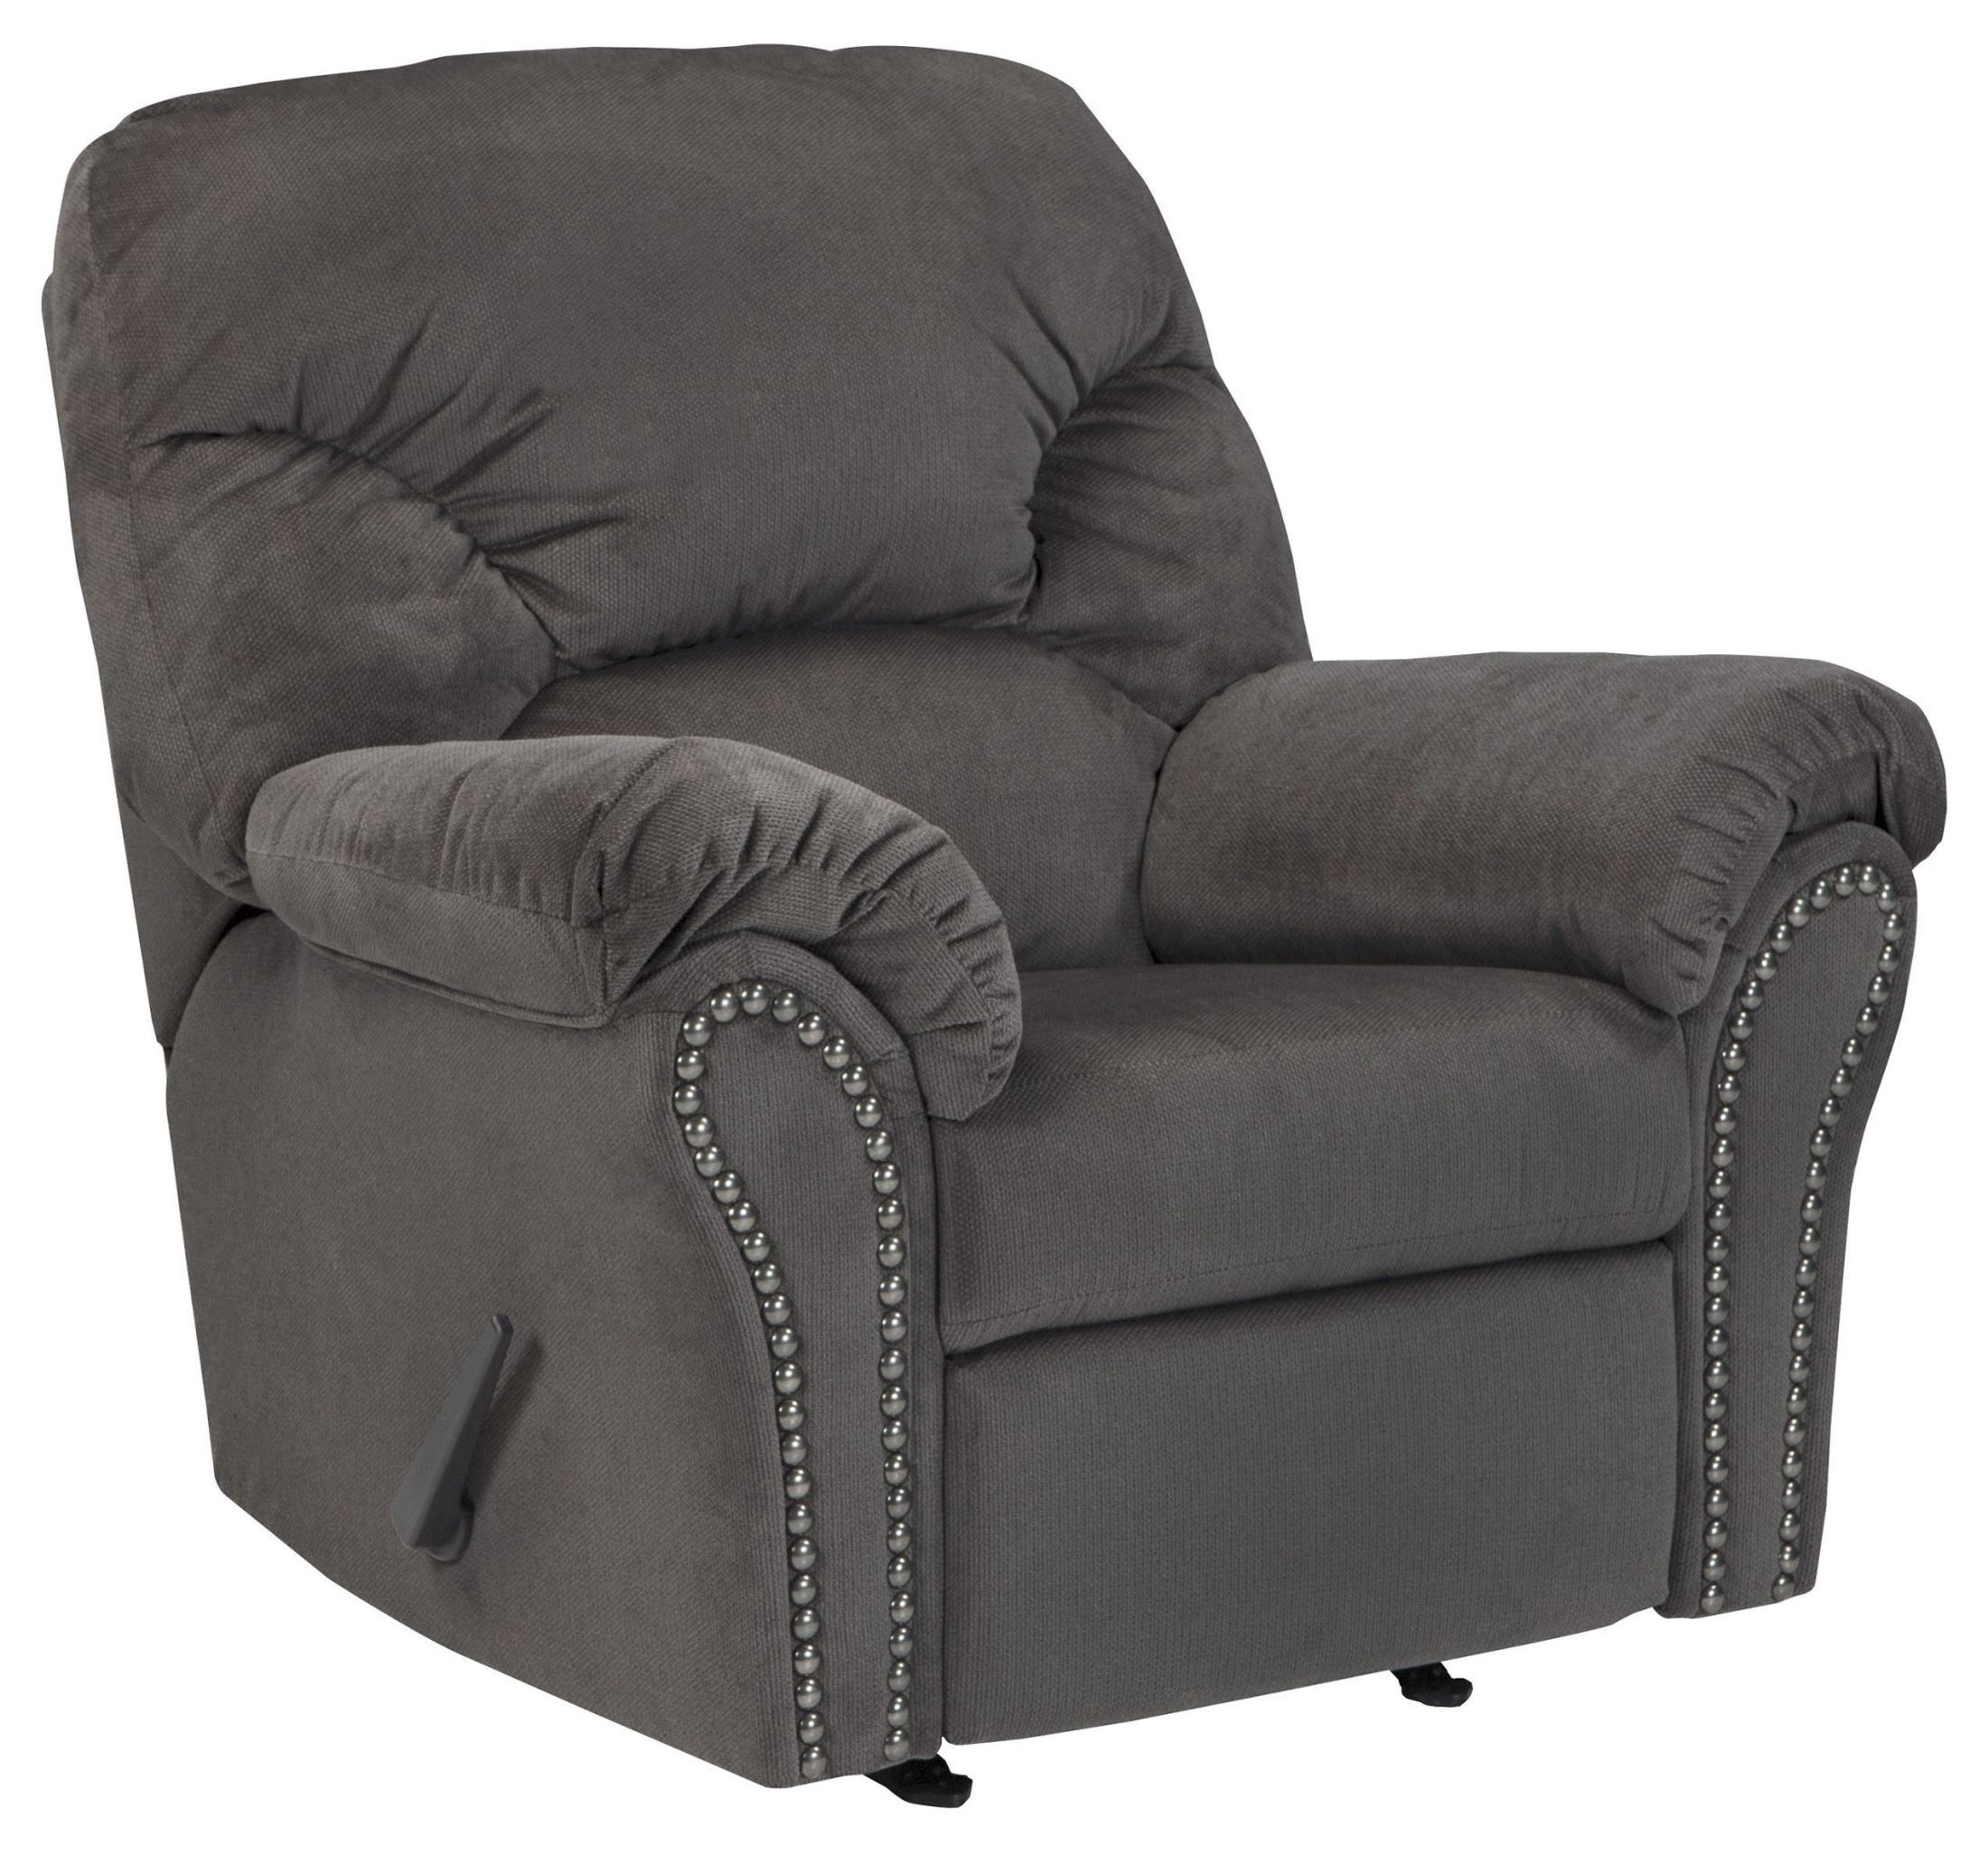 Kinlock Charcoal Rocker Recliner From Ashley 3340025